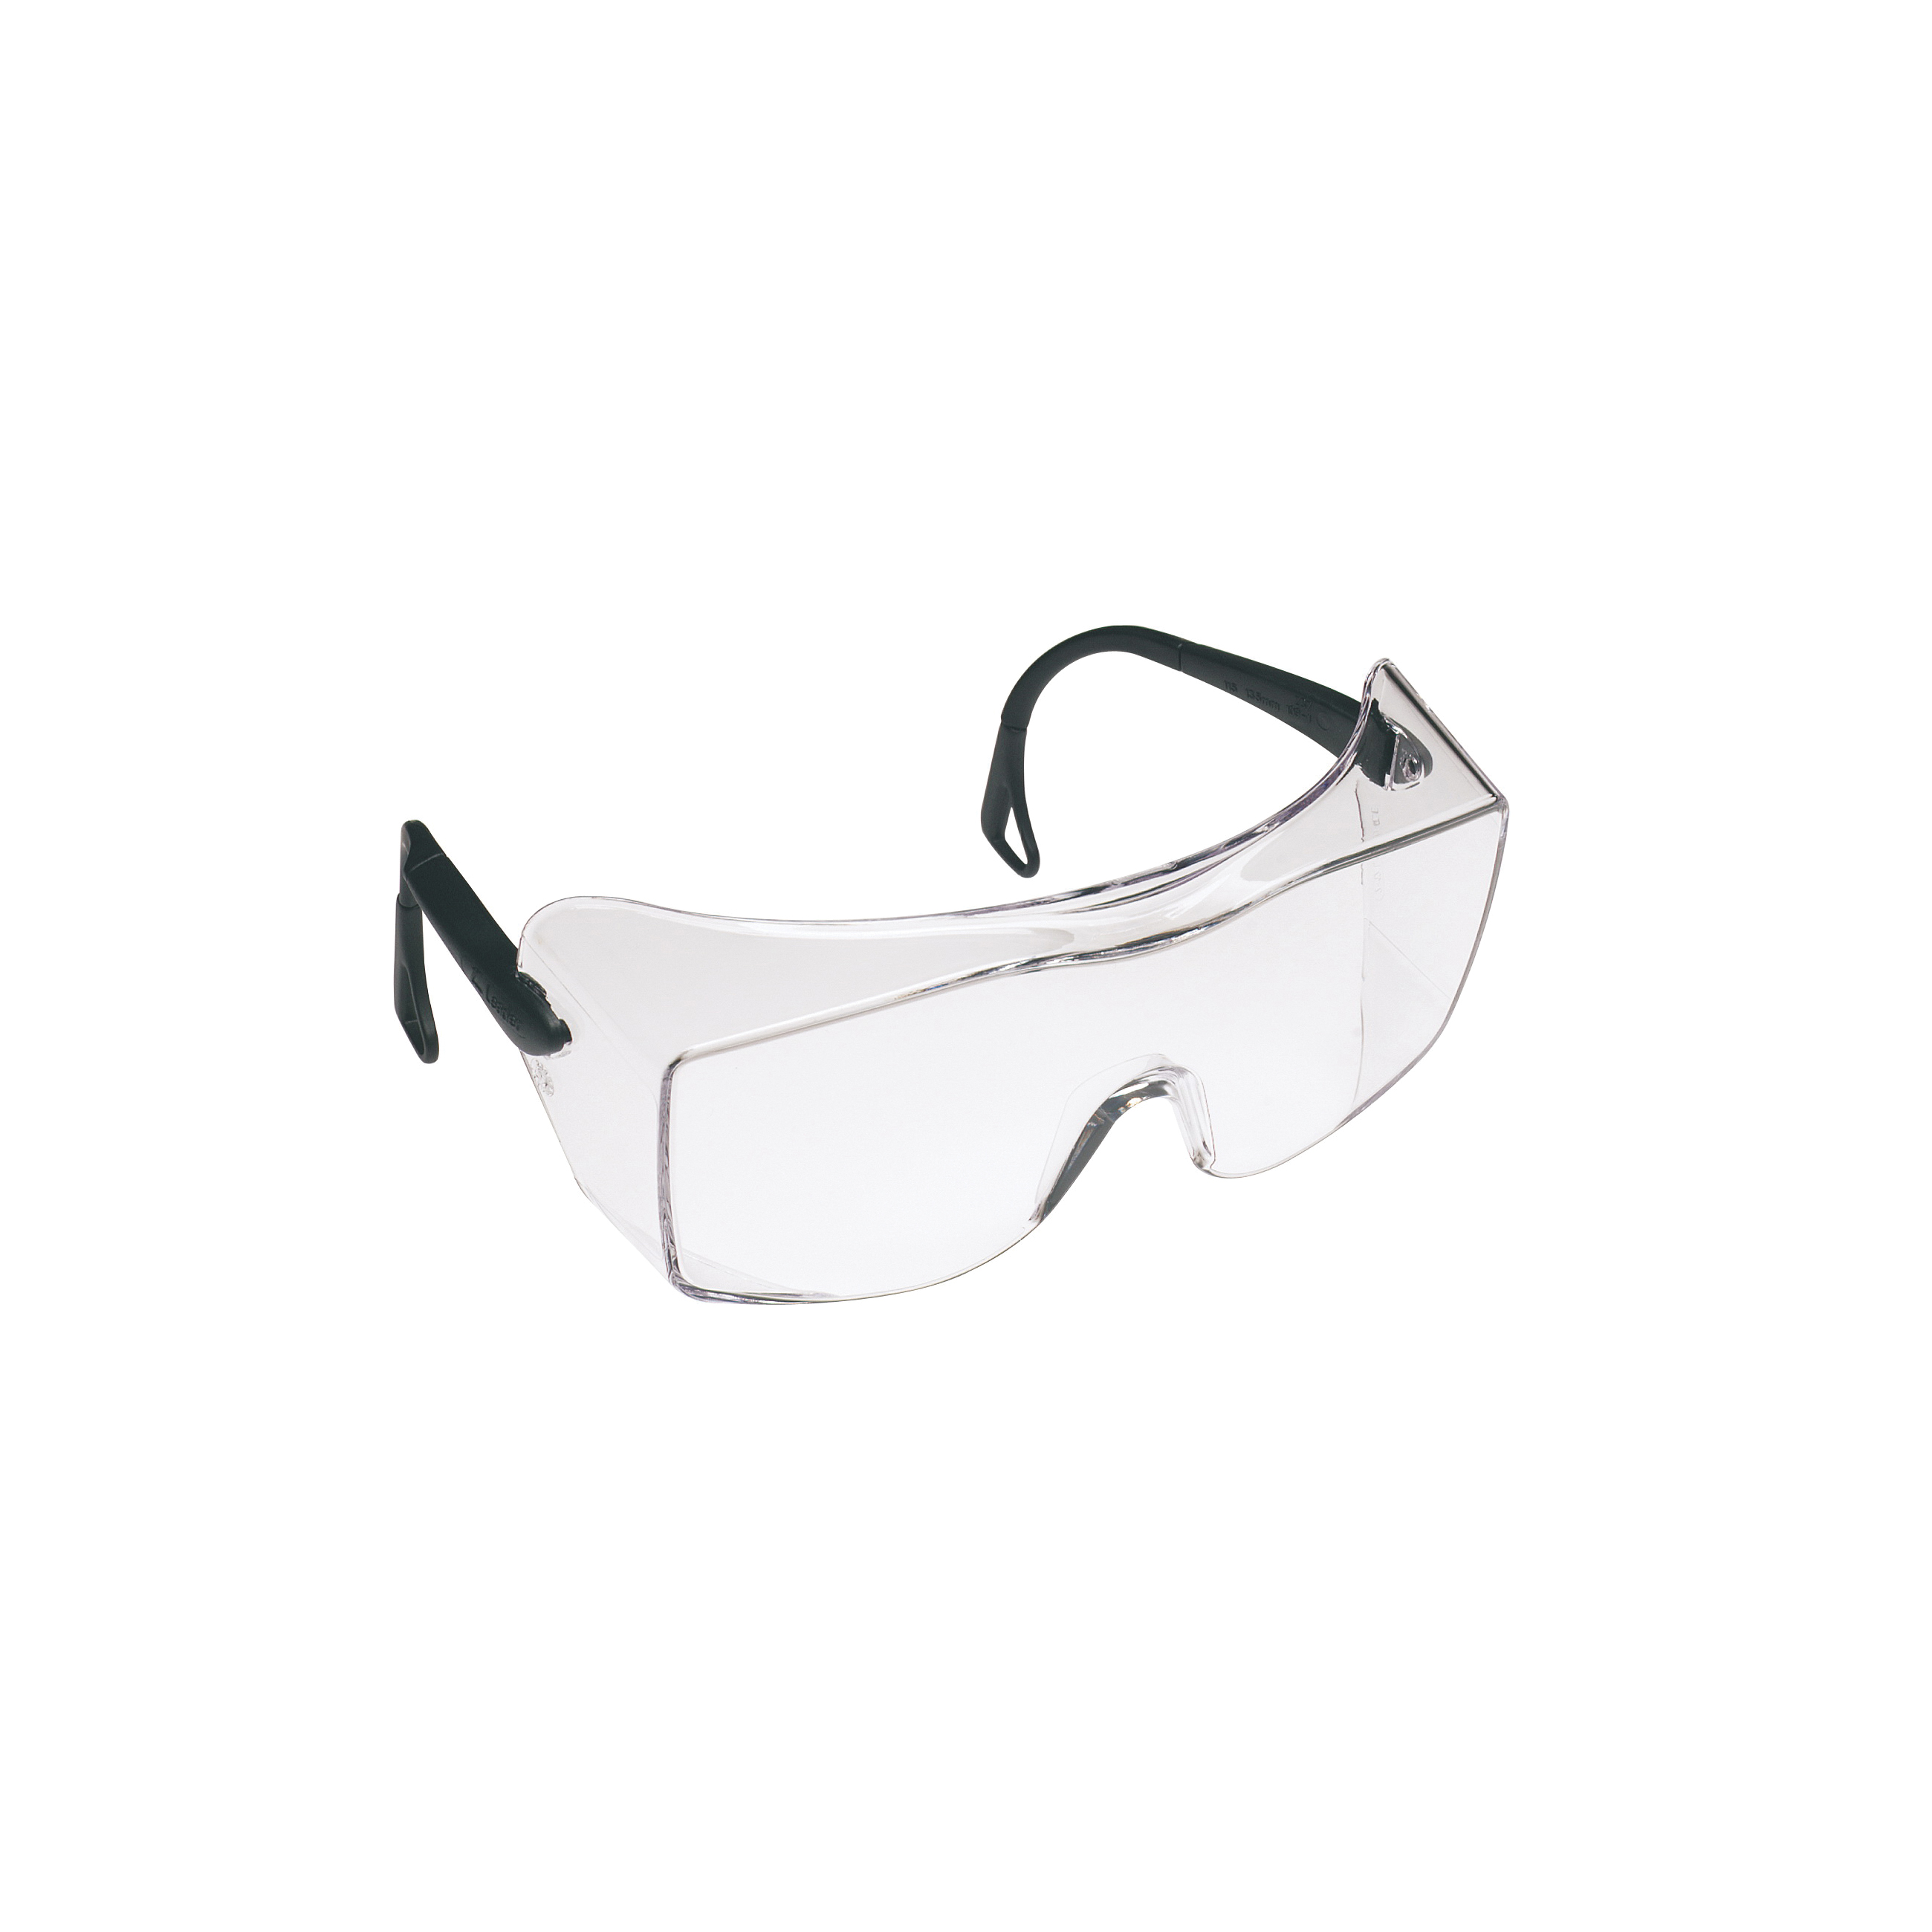 3M™ QX™ 078371-62226 12166-00000-20 Lightweight Safety Glasses, DX™ Anti-Fog/Anti-Scratch Clear Lens, Frameless Black Plastic Frame, Polycarbonate Lens, Specifications Met: ANSI Z87.1-2015, CSA Z94.3